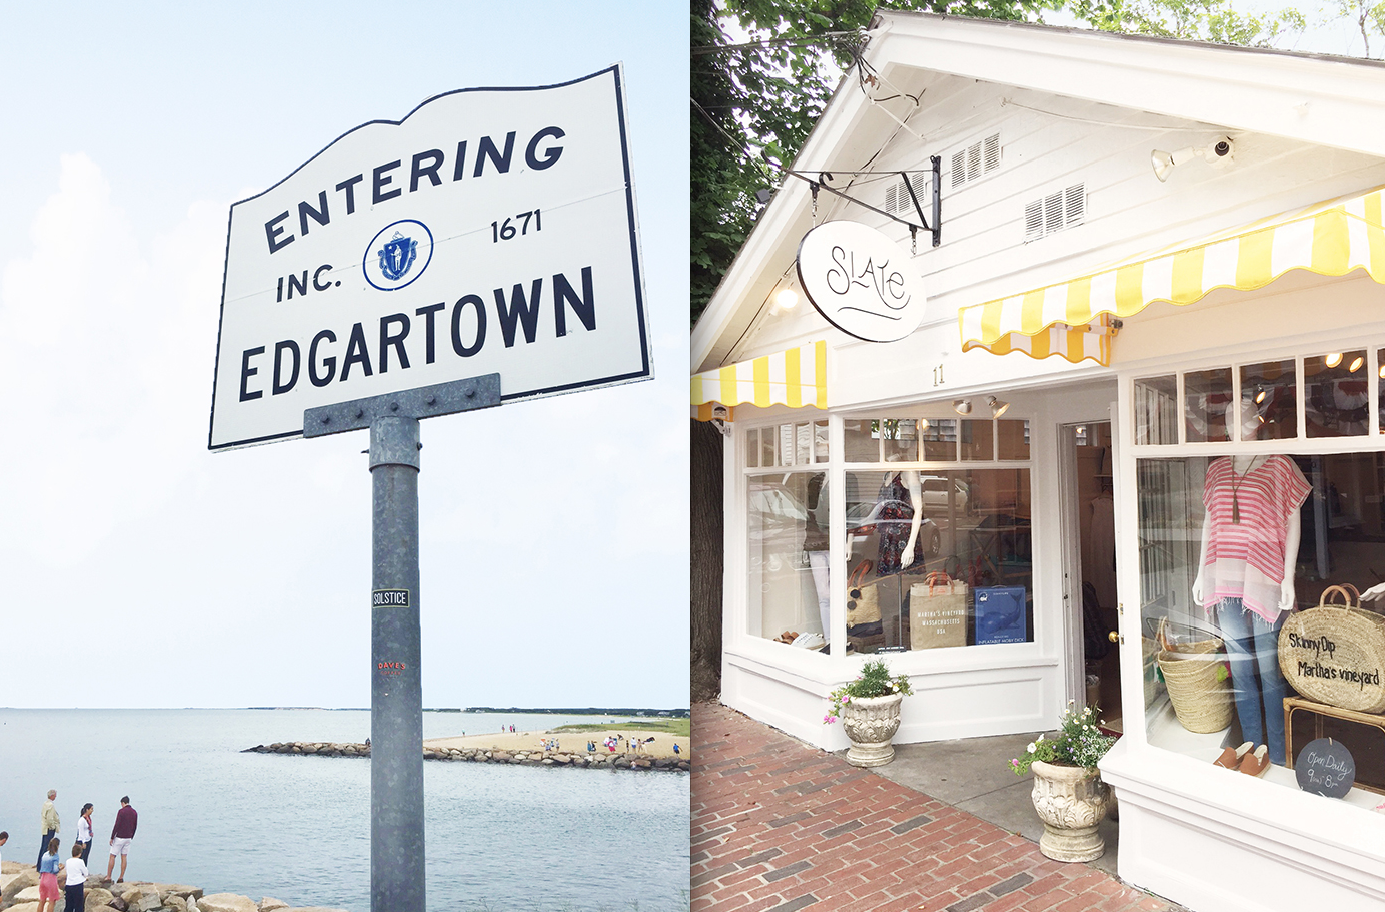 Martha's Vineyard Travel Guide by Gray Malin - Where to Shop